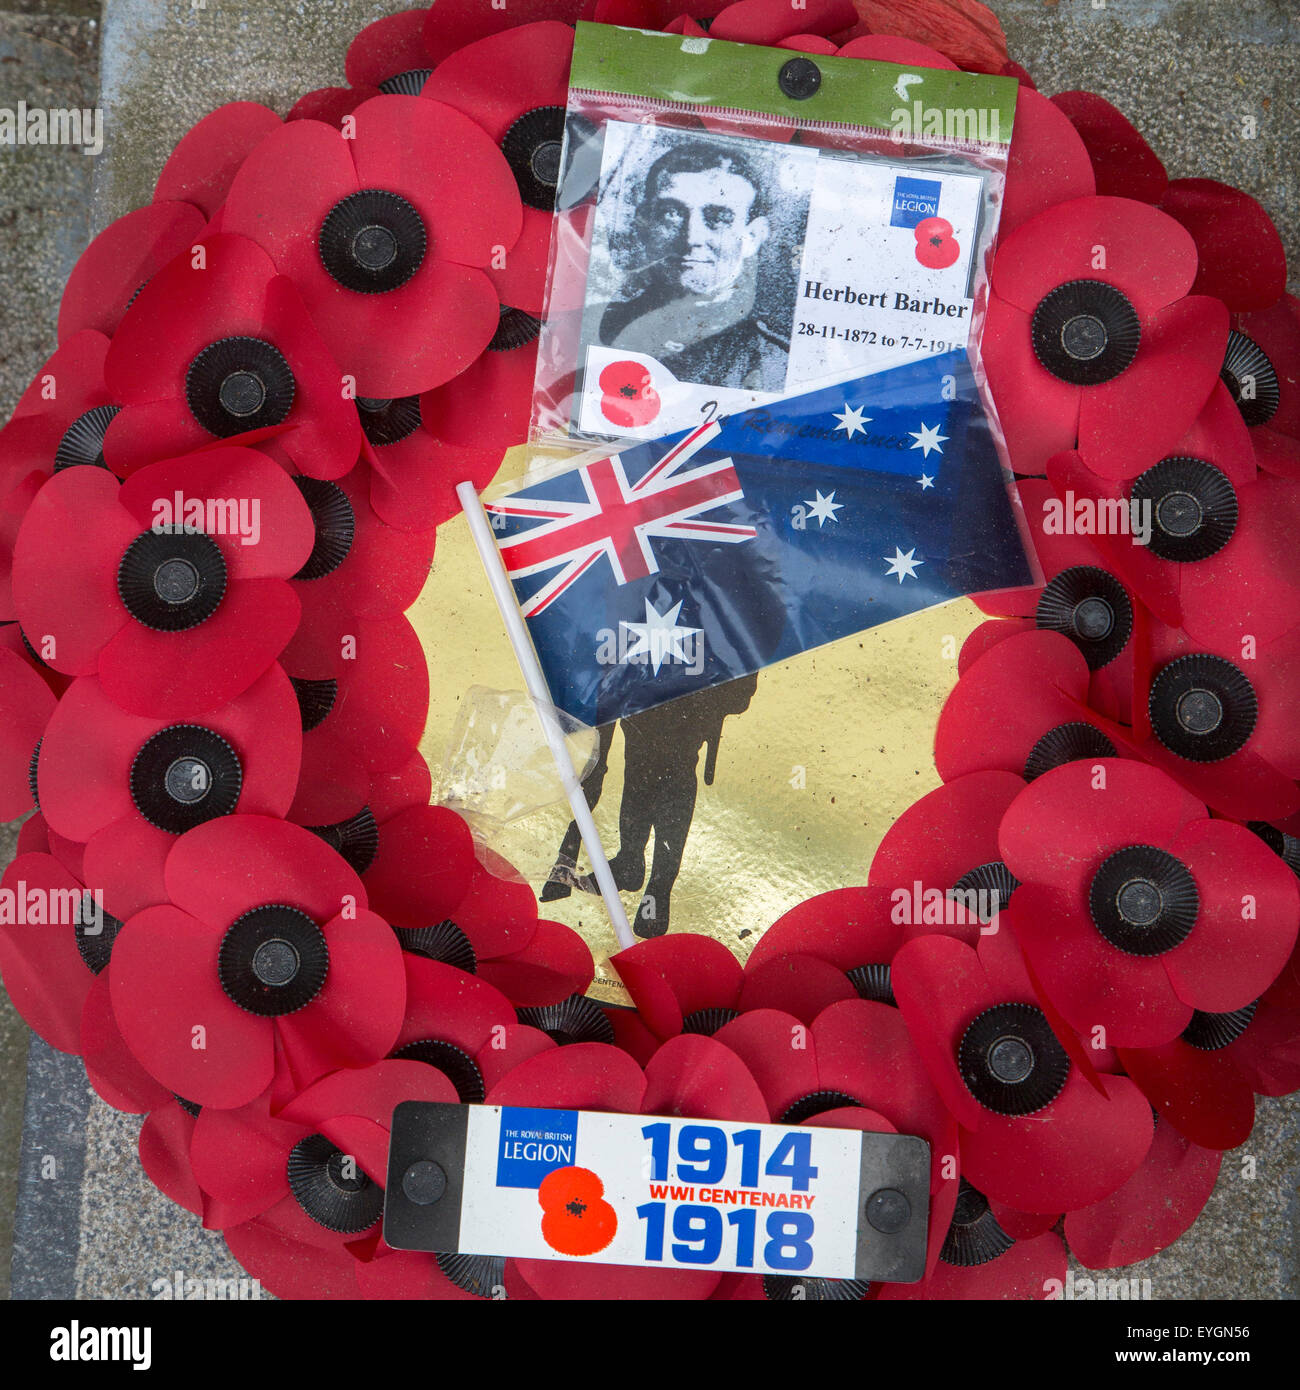 British poppy wreath for First World War One soldier during remembrance of the WWI centenary - Stock Image